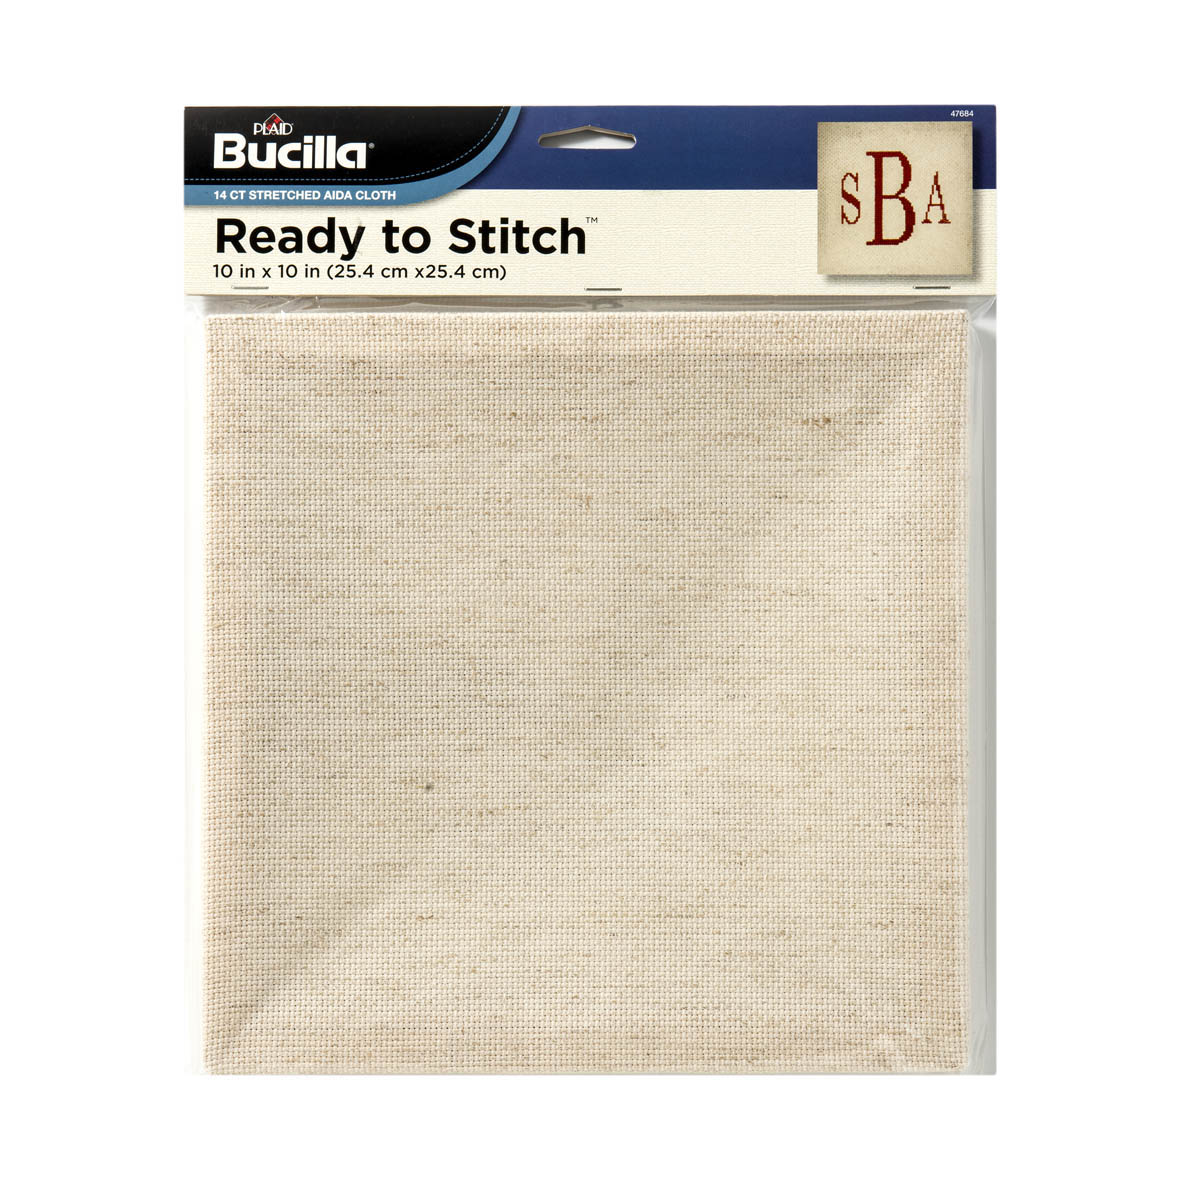 Bucilla ® Ready to Stitch™ Blanks - Counted Cross Stitch - Oatmeal, 10